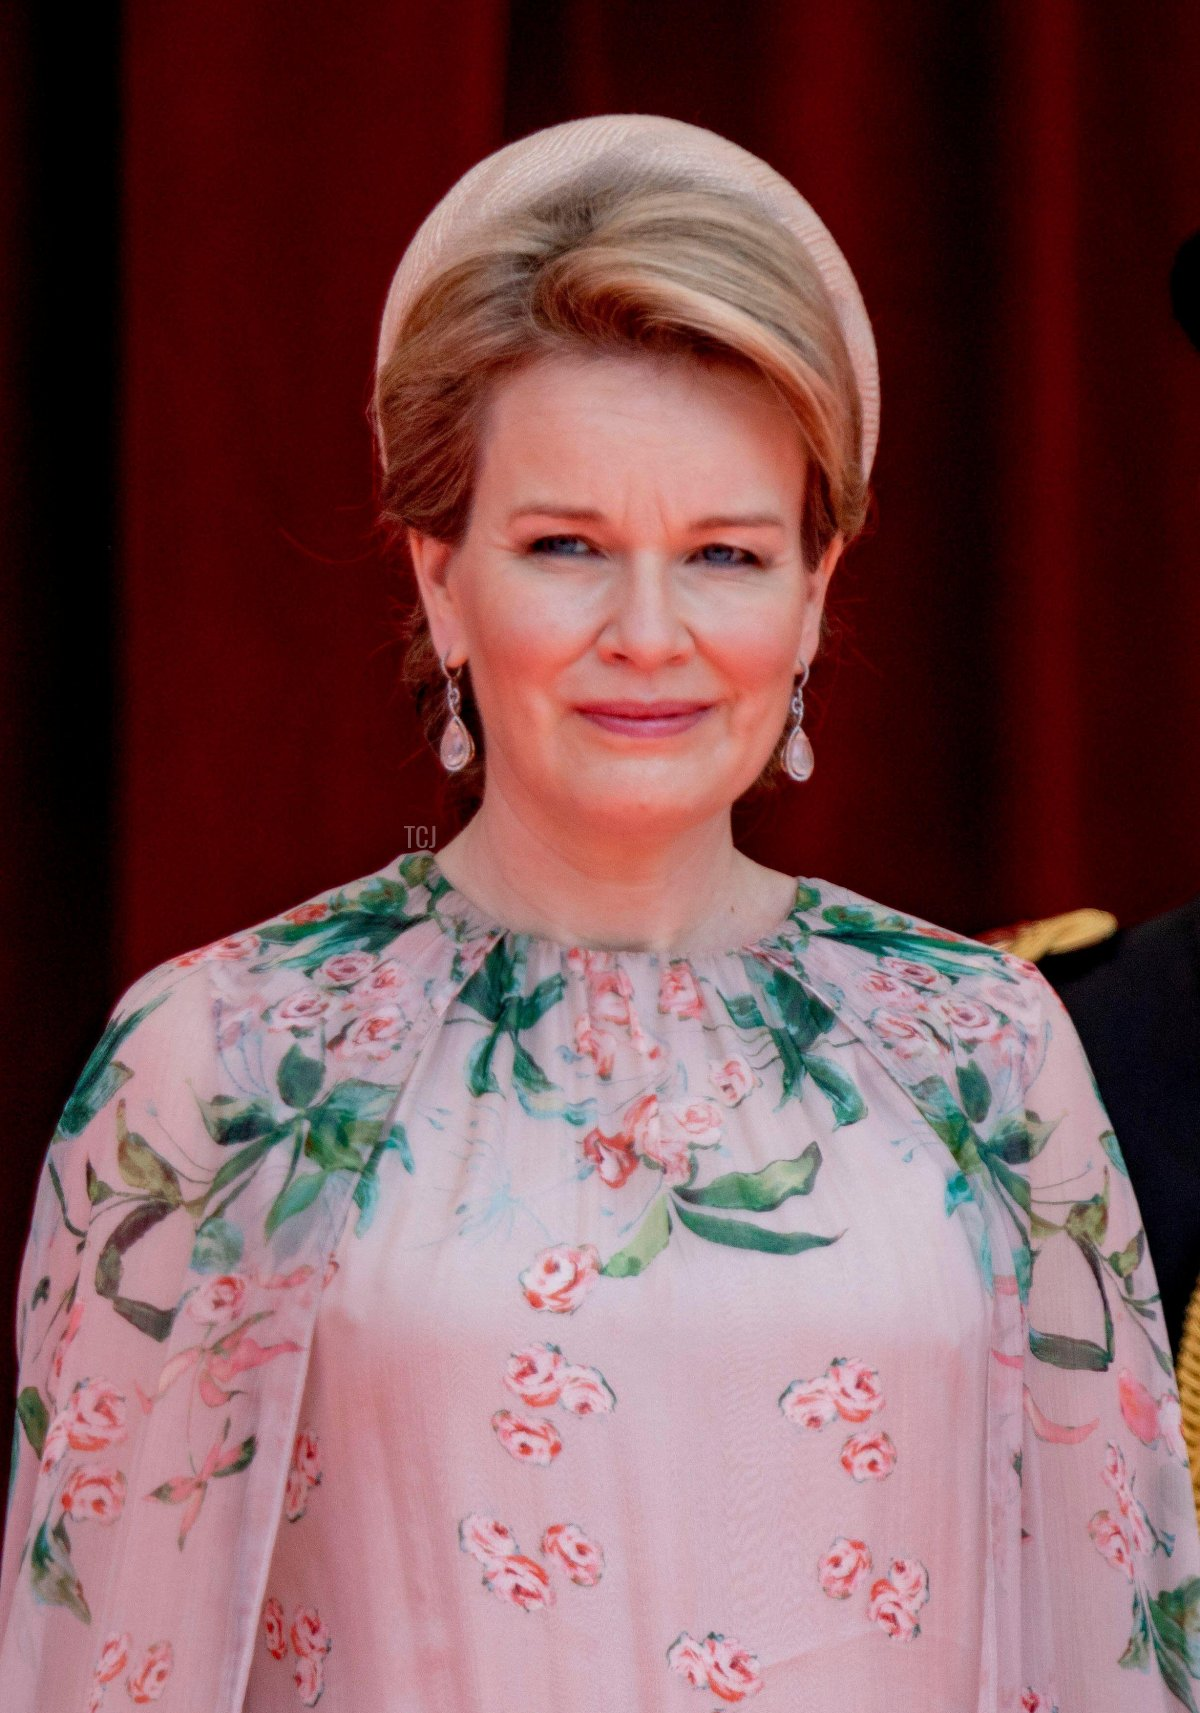 Queen Mathilde attends the military parade in Brussels on National Day, July 21, 2021